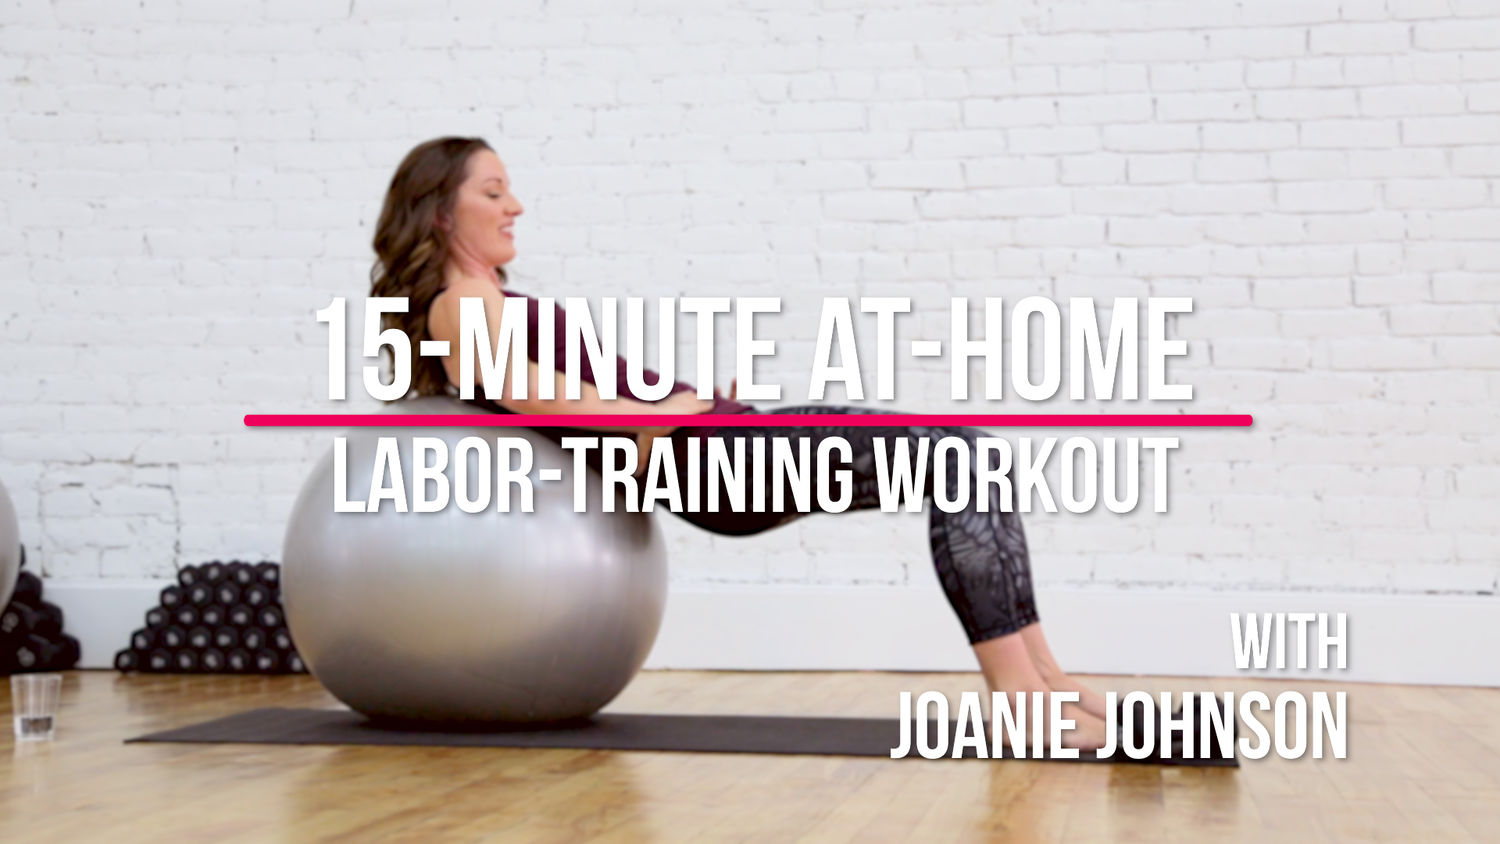 15-Minute At-Home Labor-Training Workout